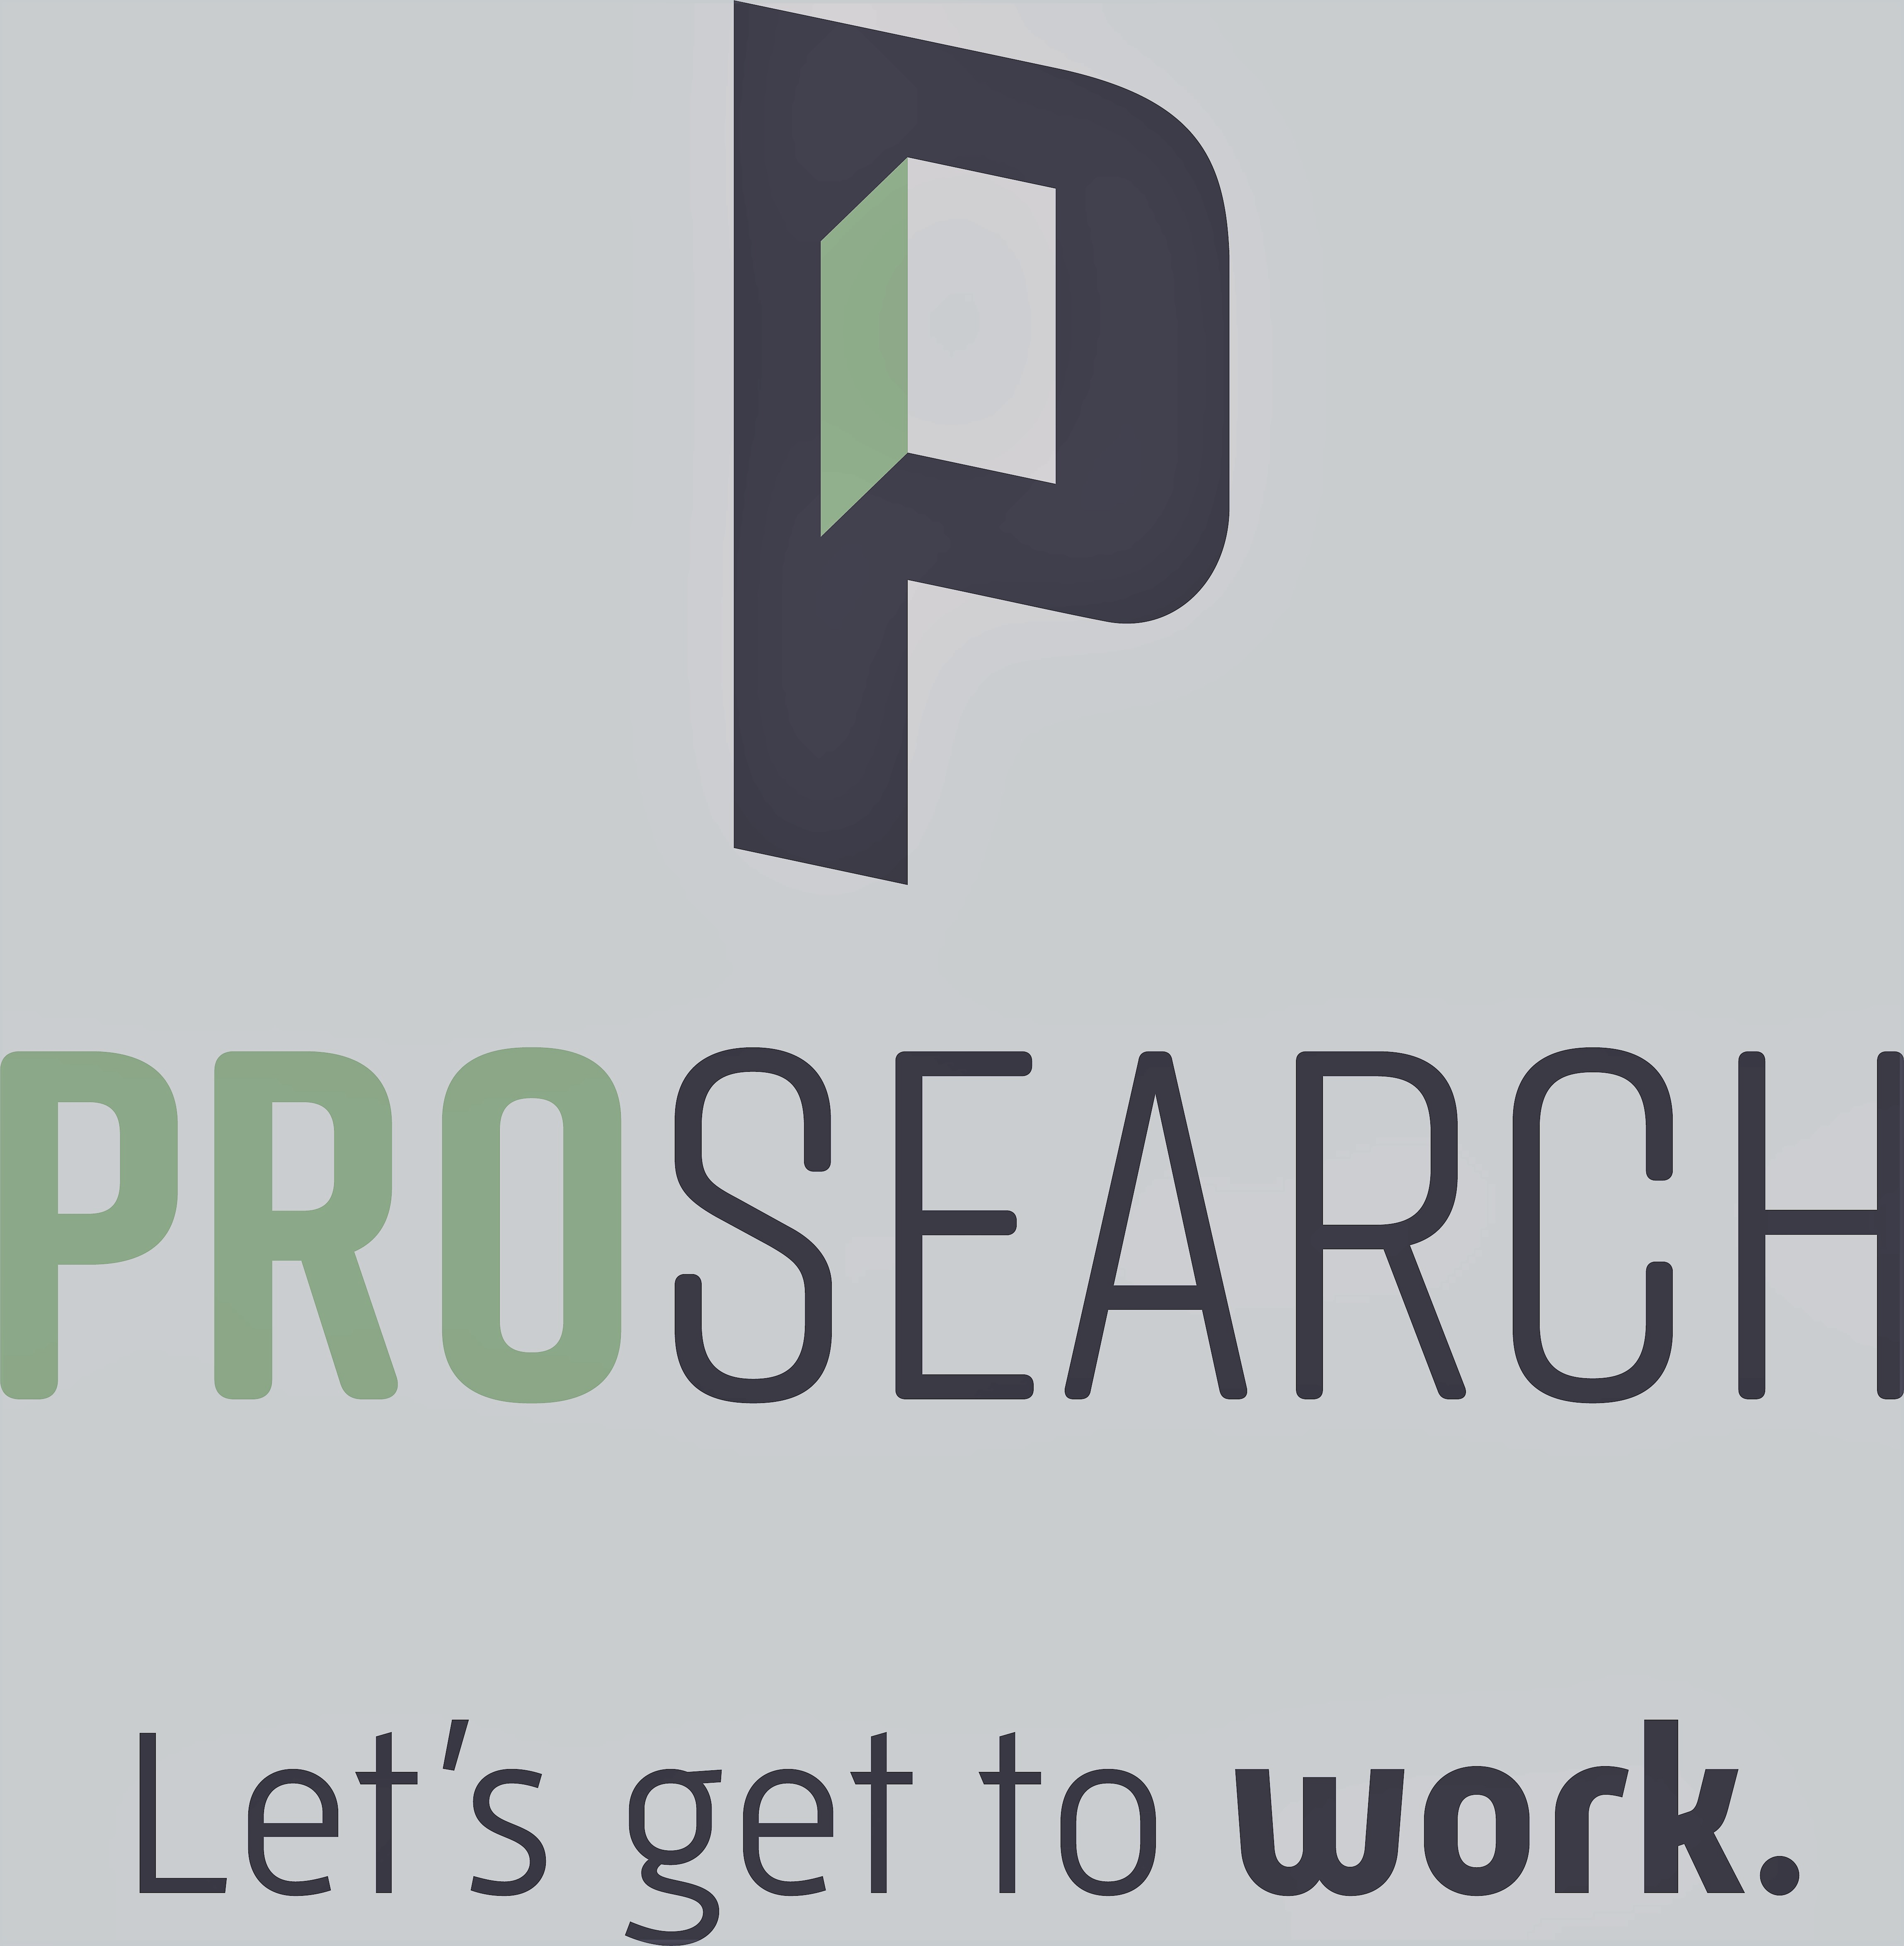 Pro Search Inc